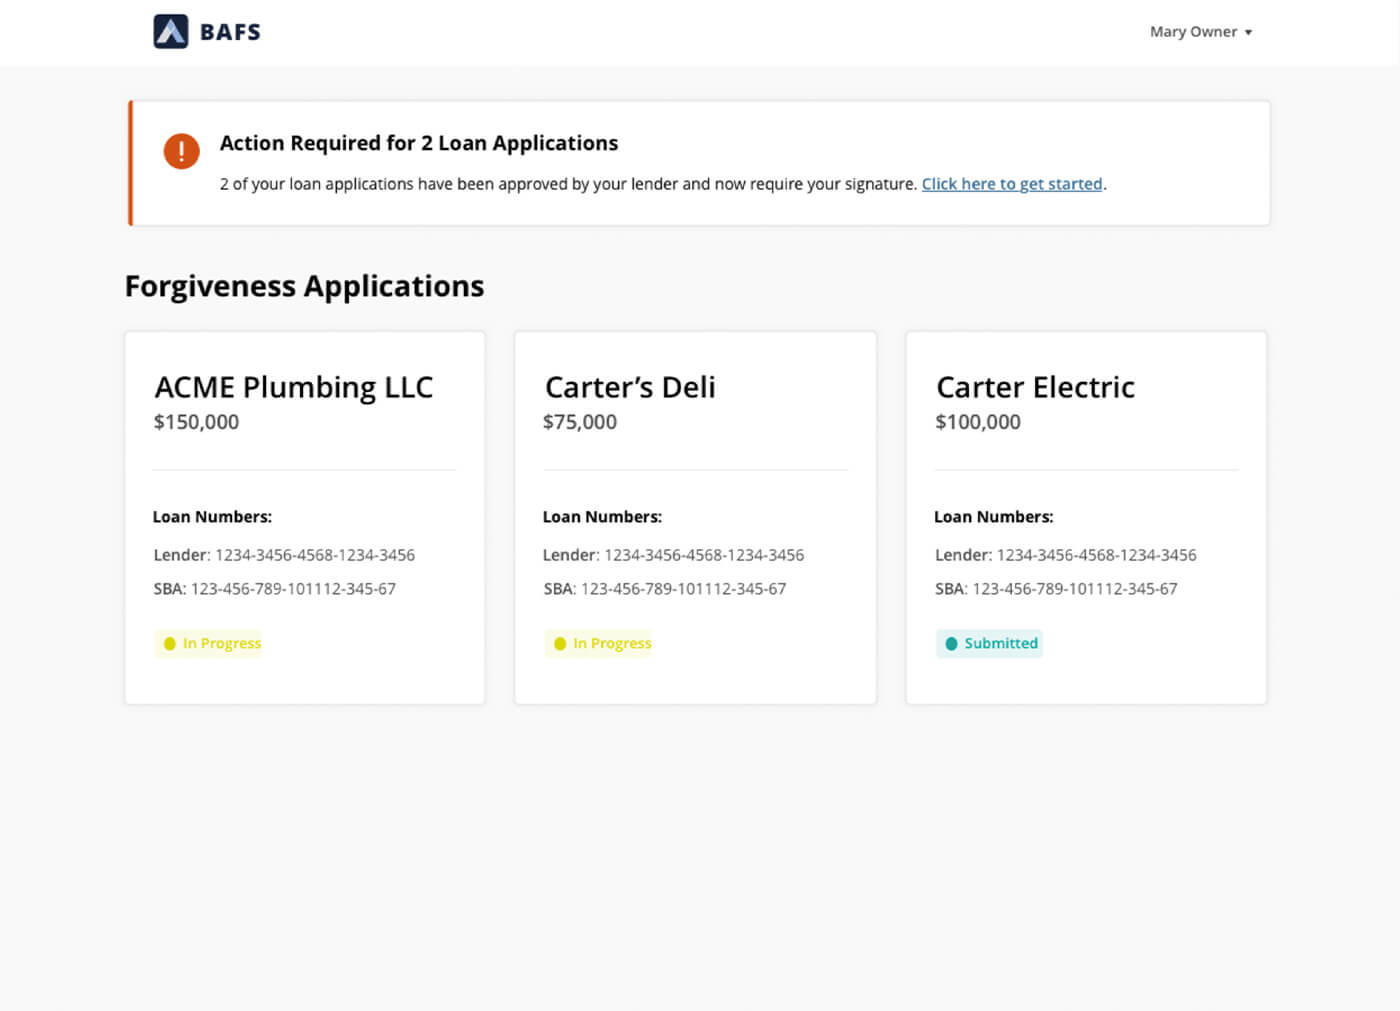 BAFS dashboard showing loan applications; two are flagged as needing attention